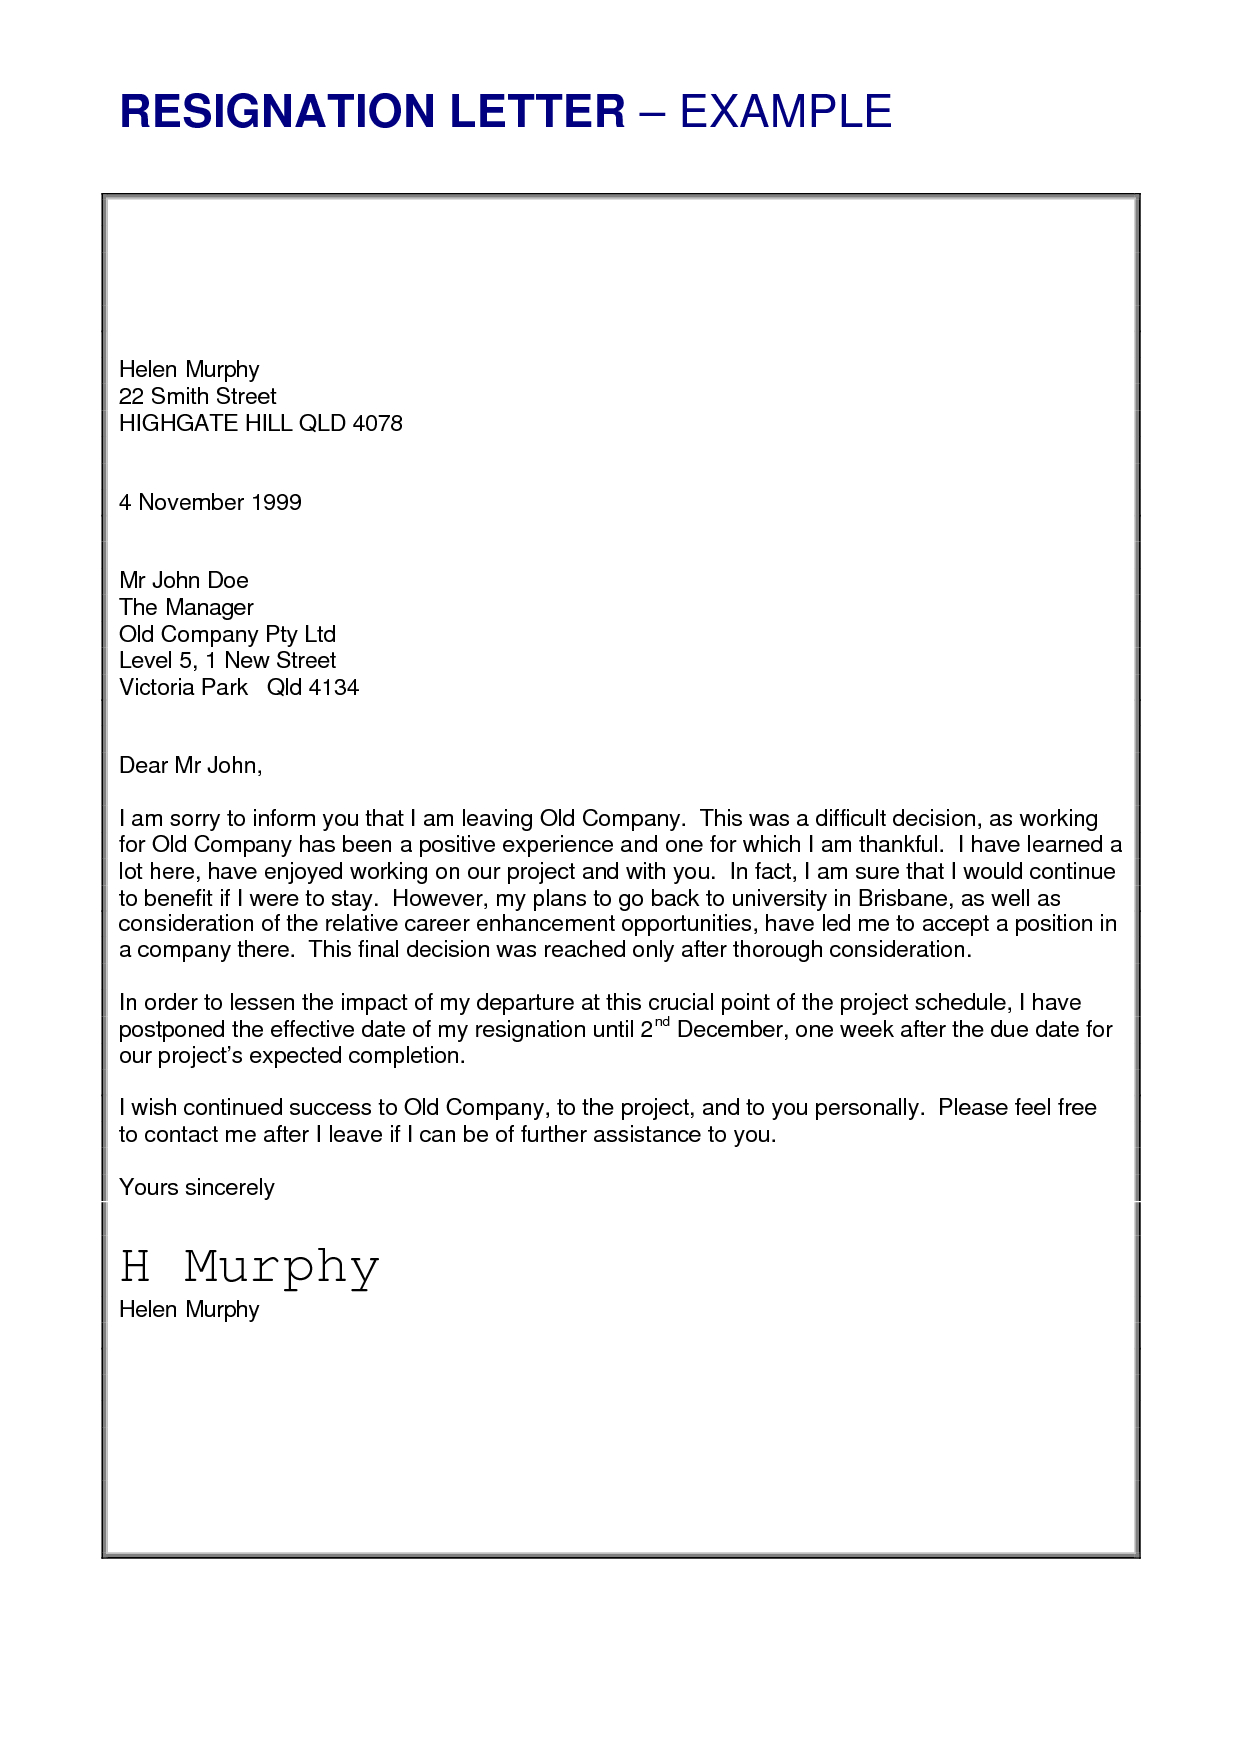 Resignation Letter Template Word Free - Job Resignation Letter Sample Loganun Blog Job